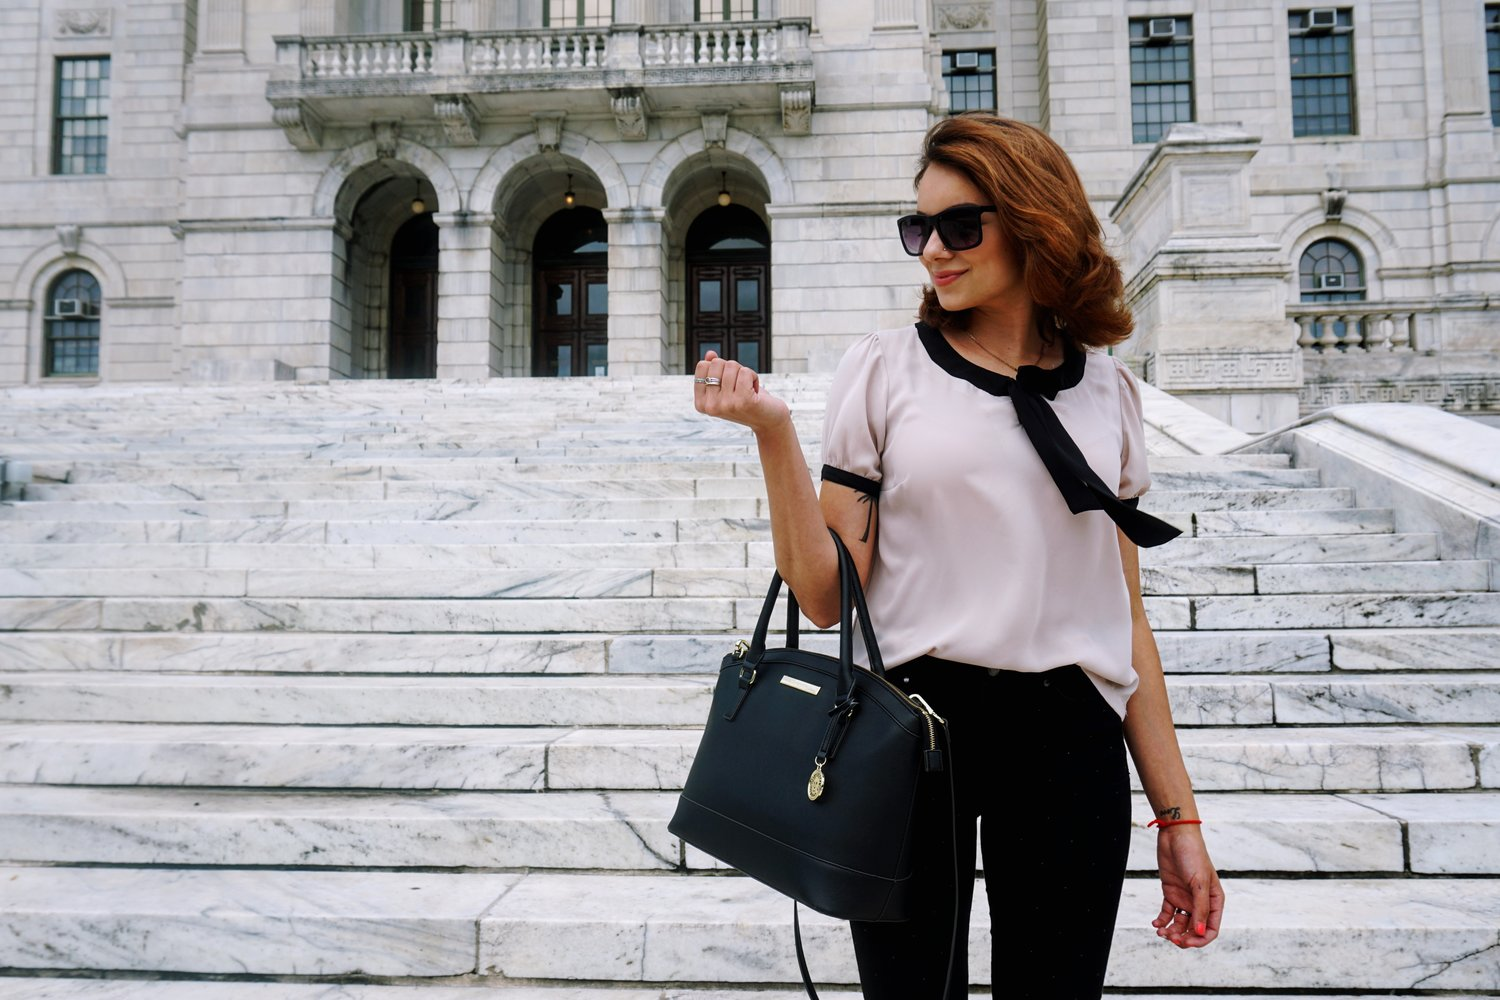 Big black purse with a business casual outfit.